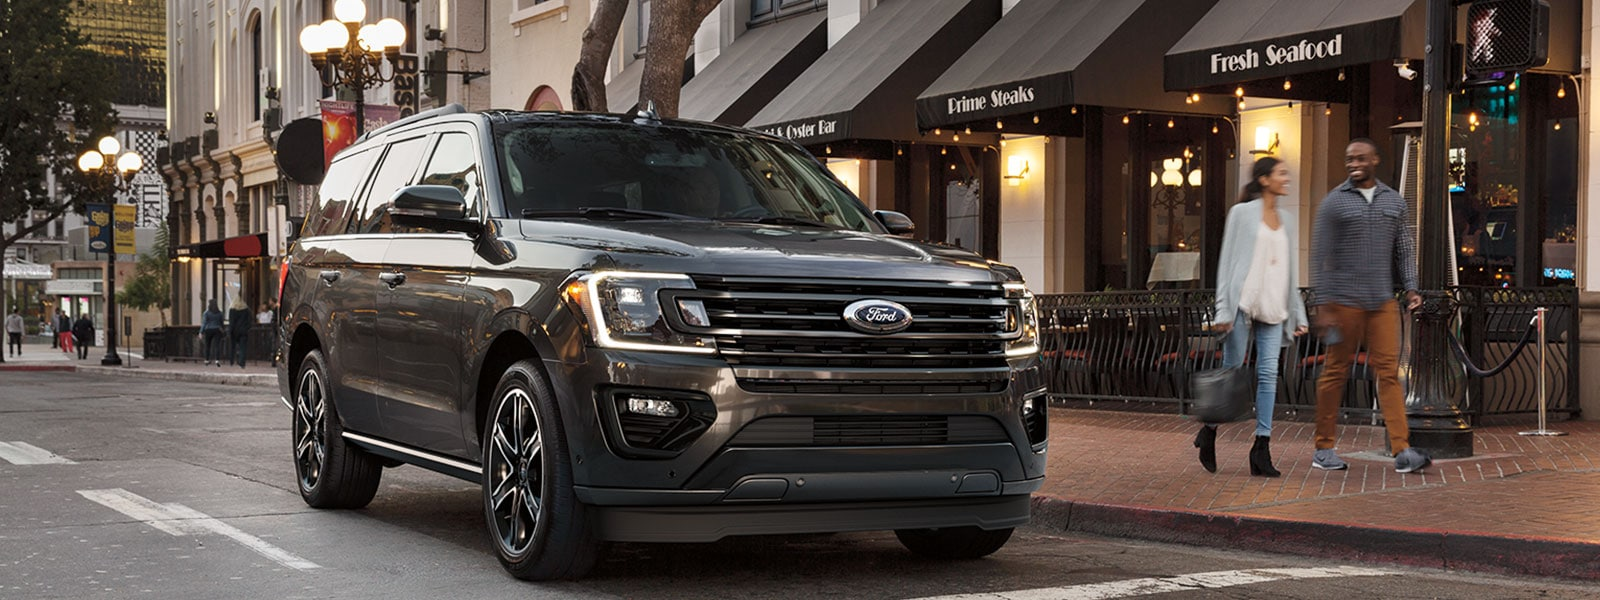 Ford Dealers Nj >> 2019 Ford Expedition Echelon Ford Local Ford Dealership In Nj